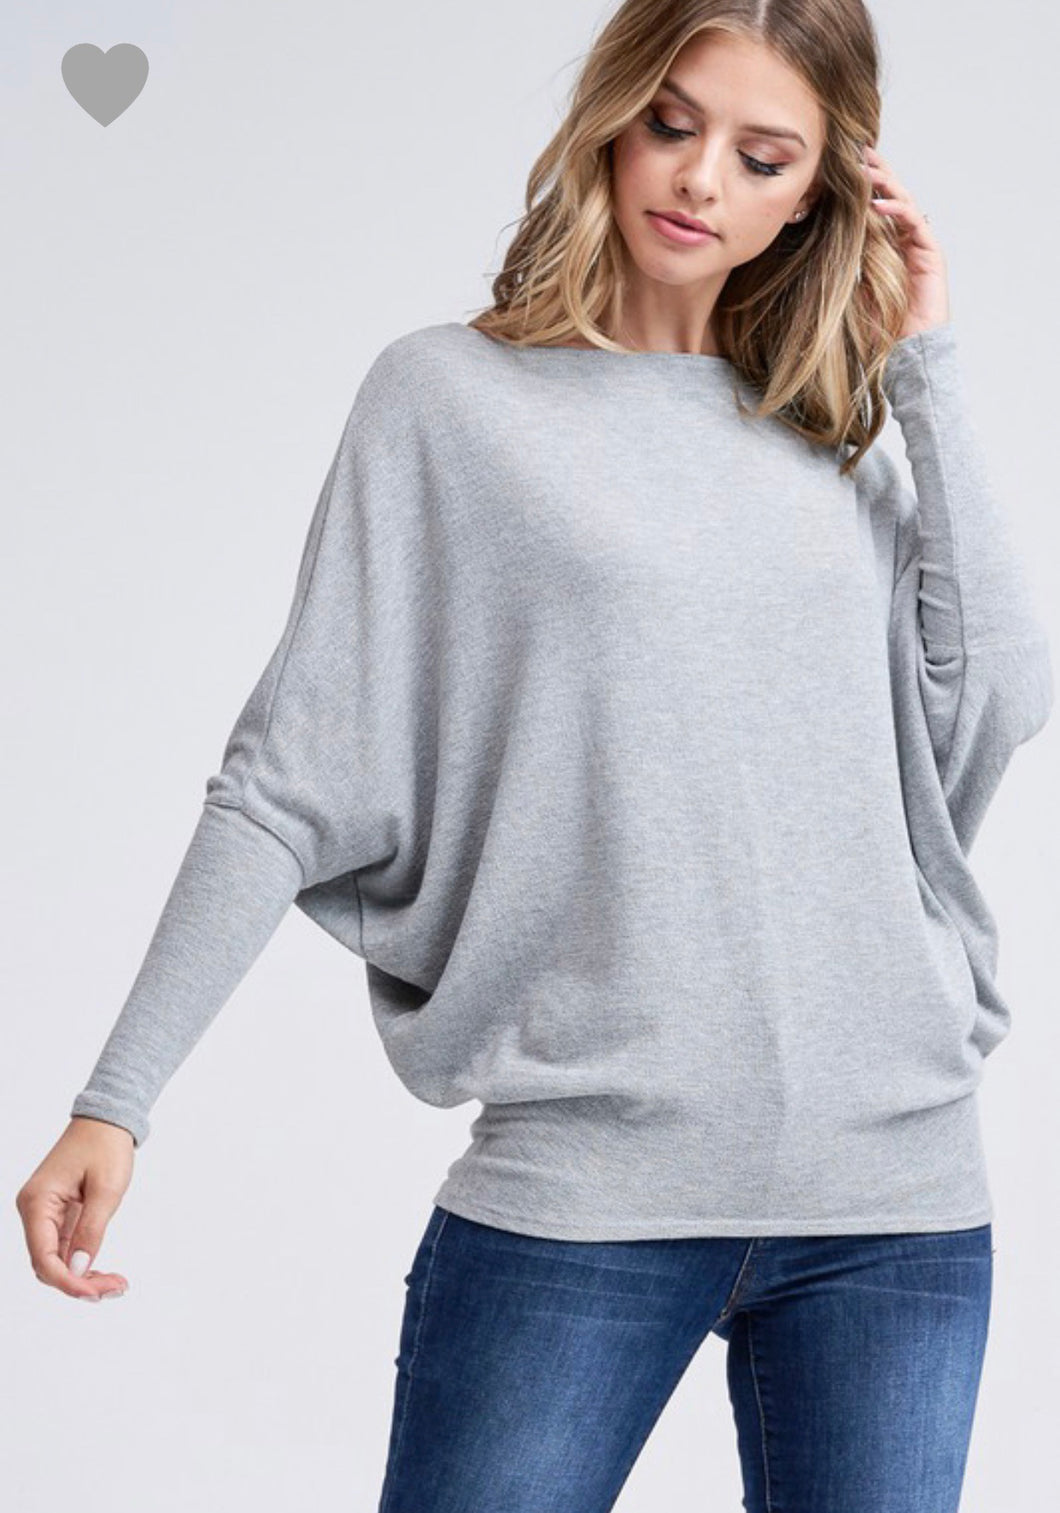 X Joleen Dolman Top - Gray - Smith & Vena Online Boutique